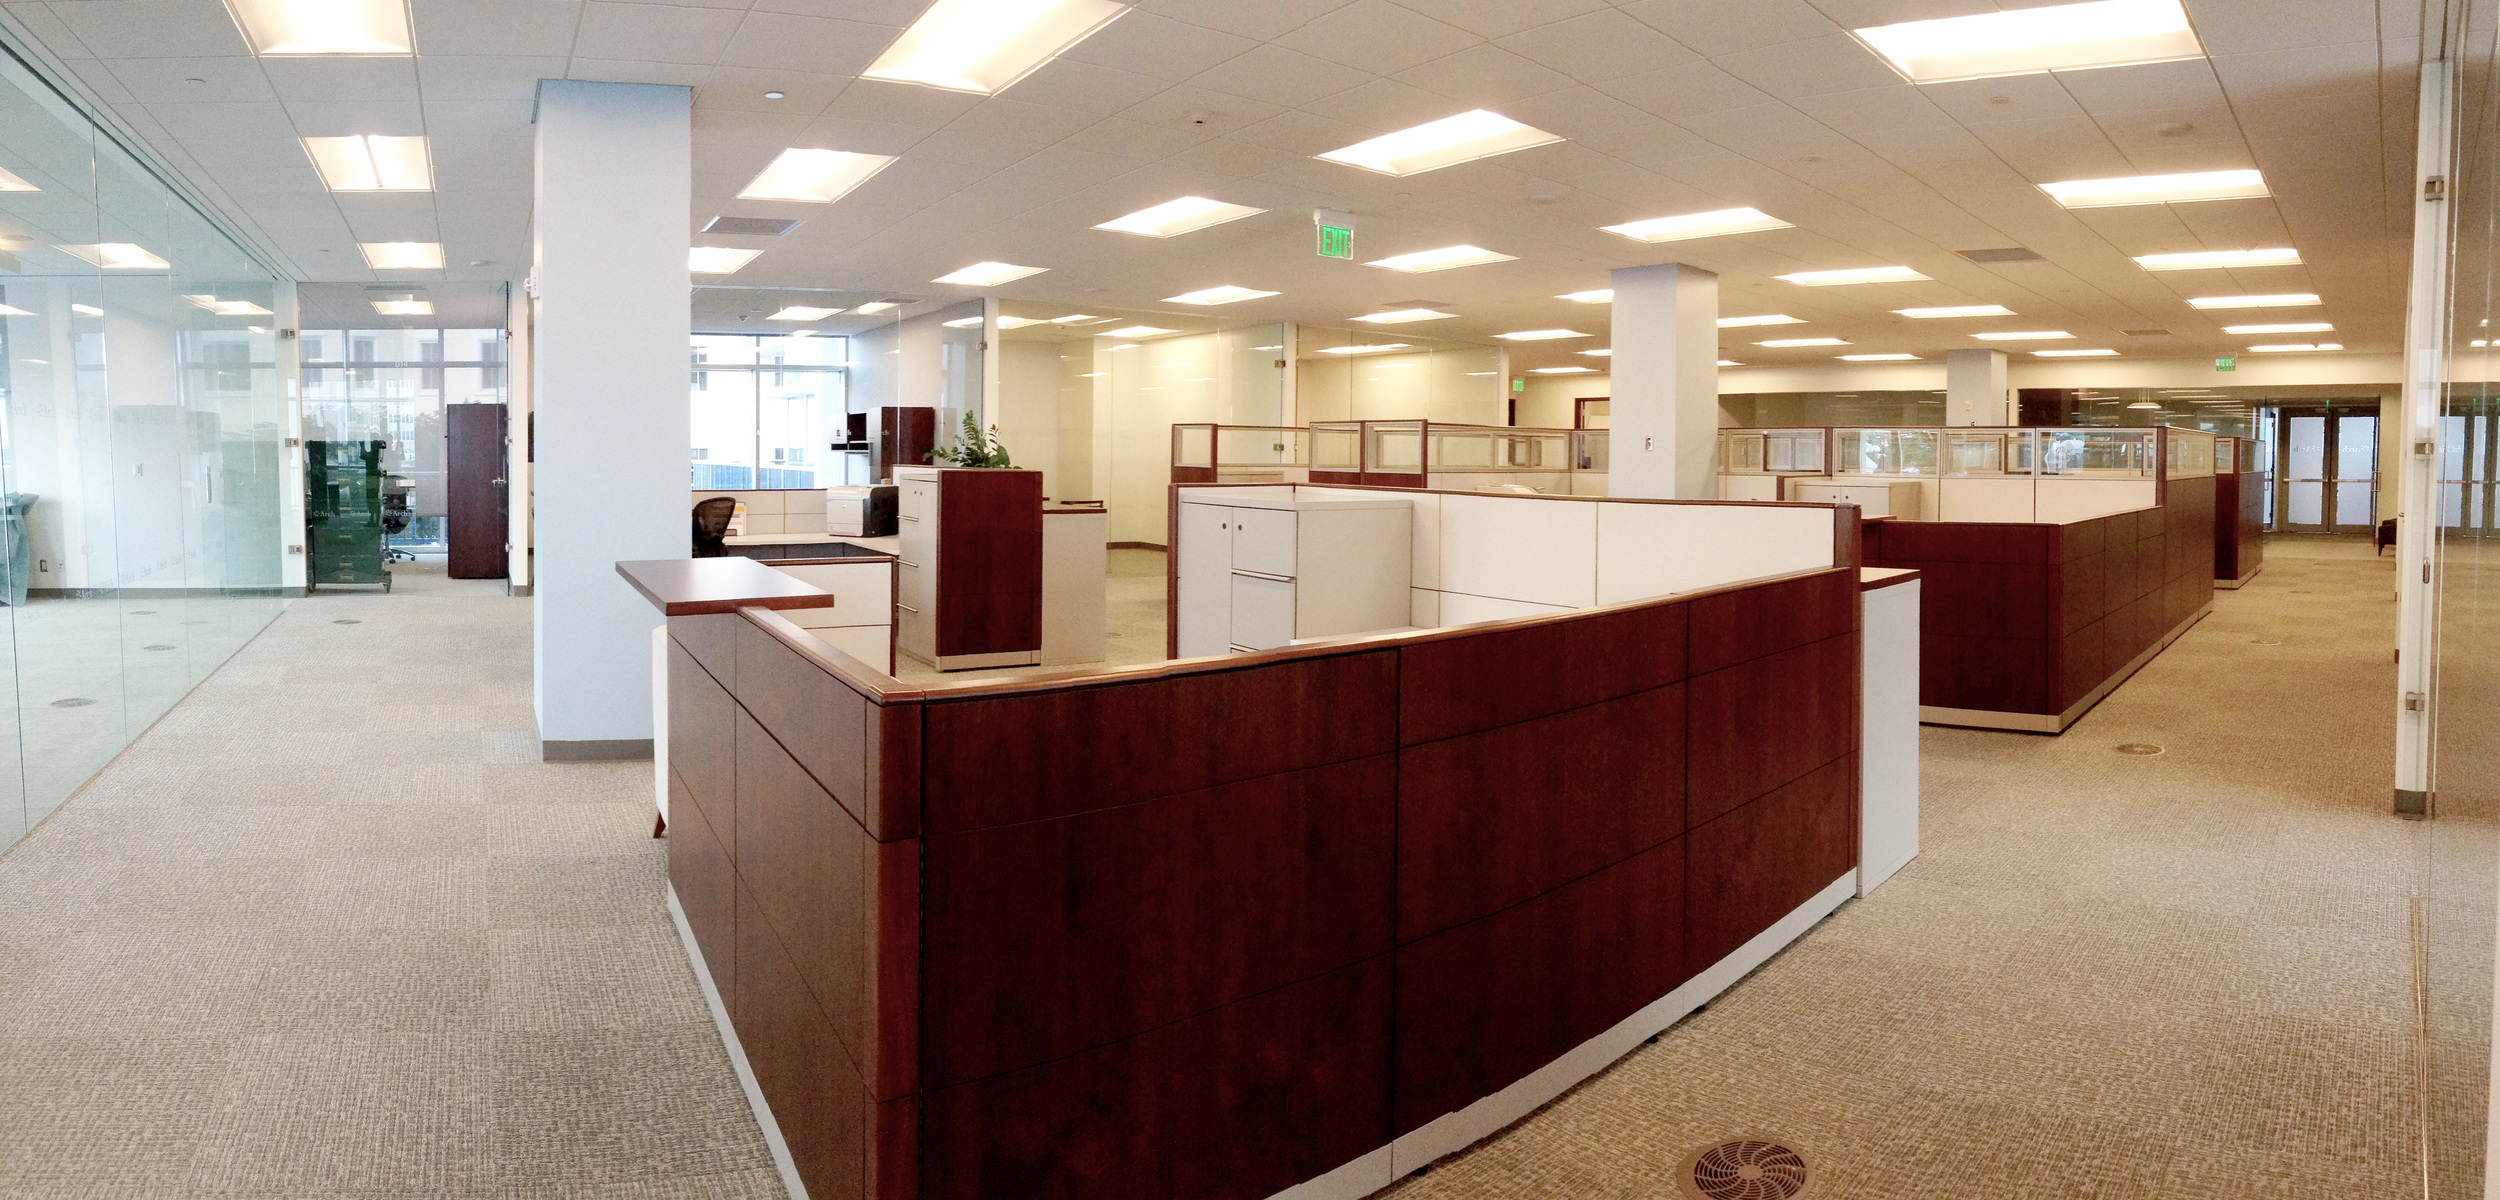 Cubicle view II. Photograph